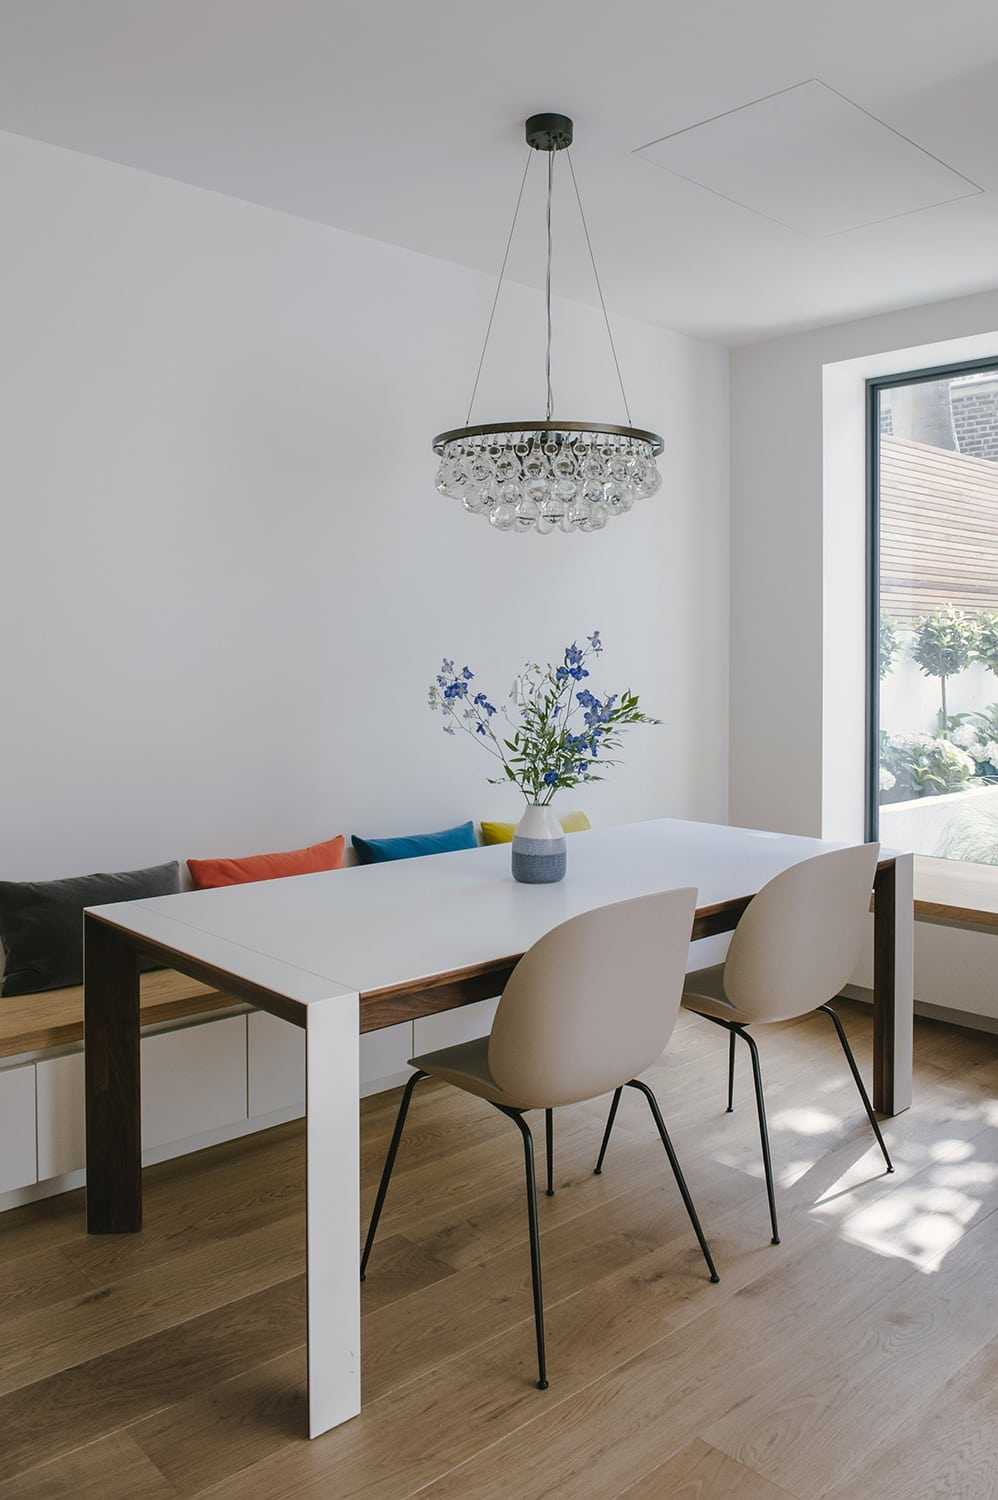 Maida Vale - Westminster garden flat extension refurbishment dining room bespoke joinery